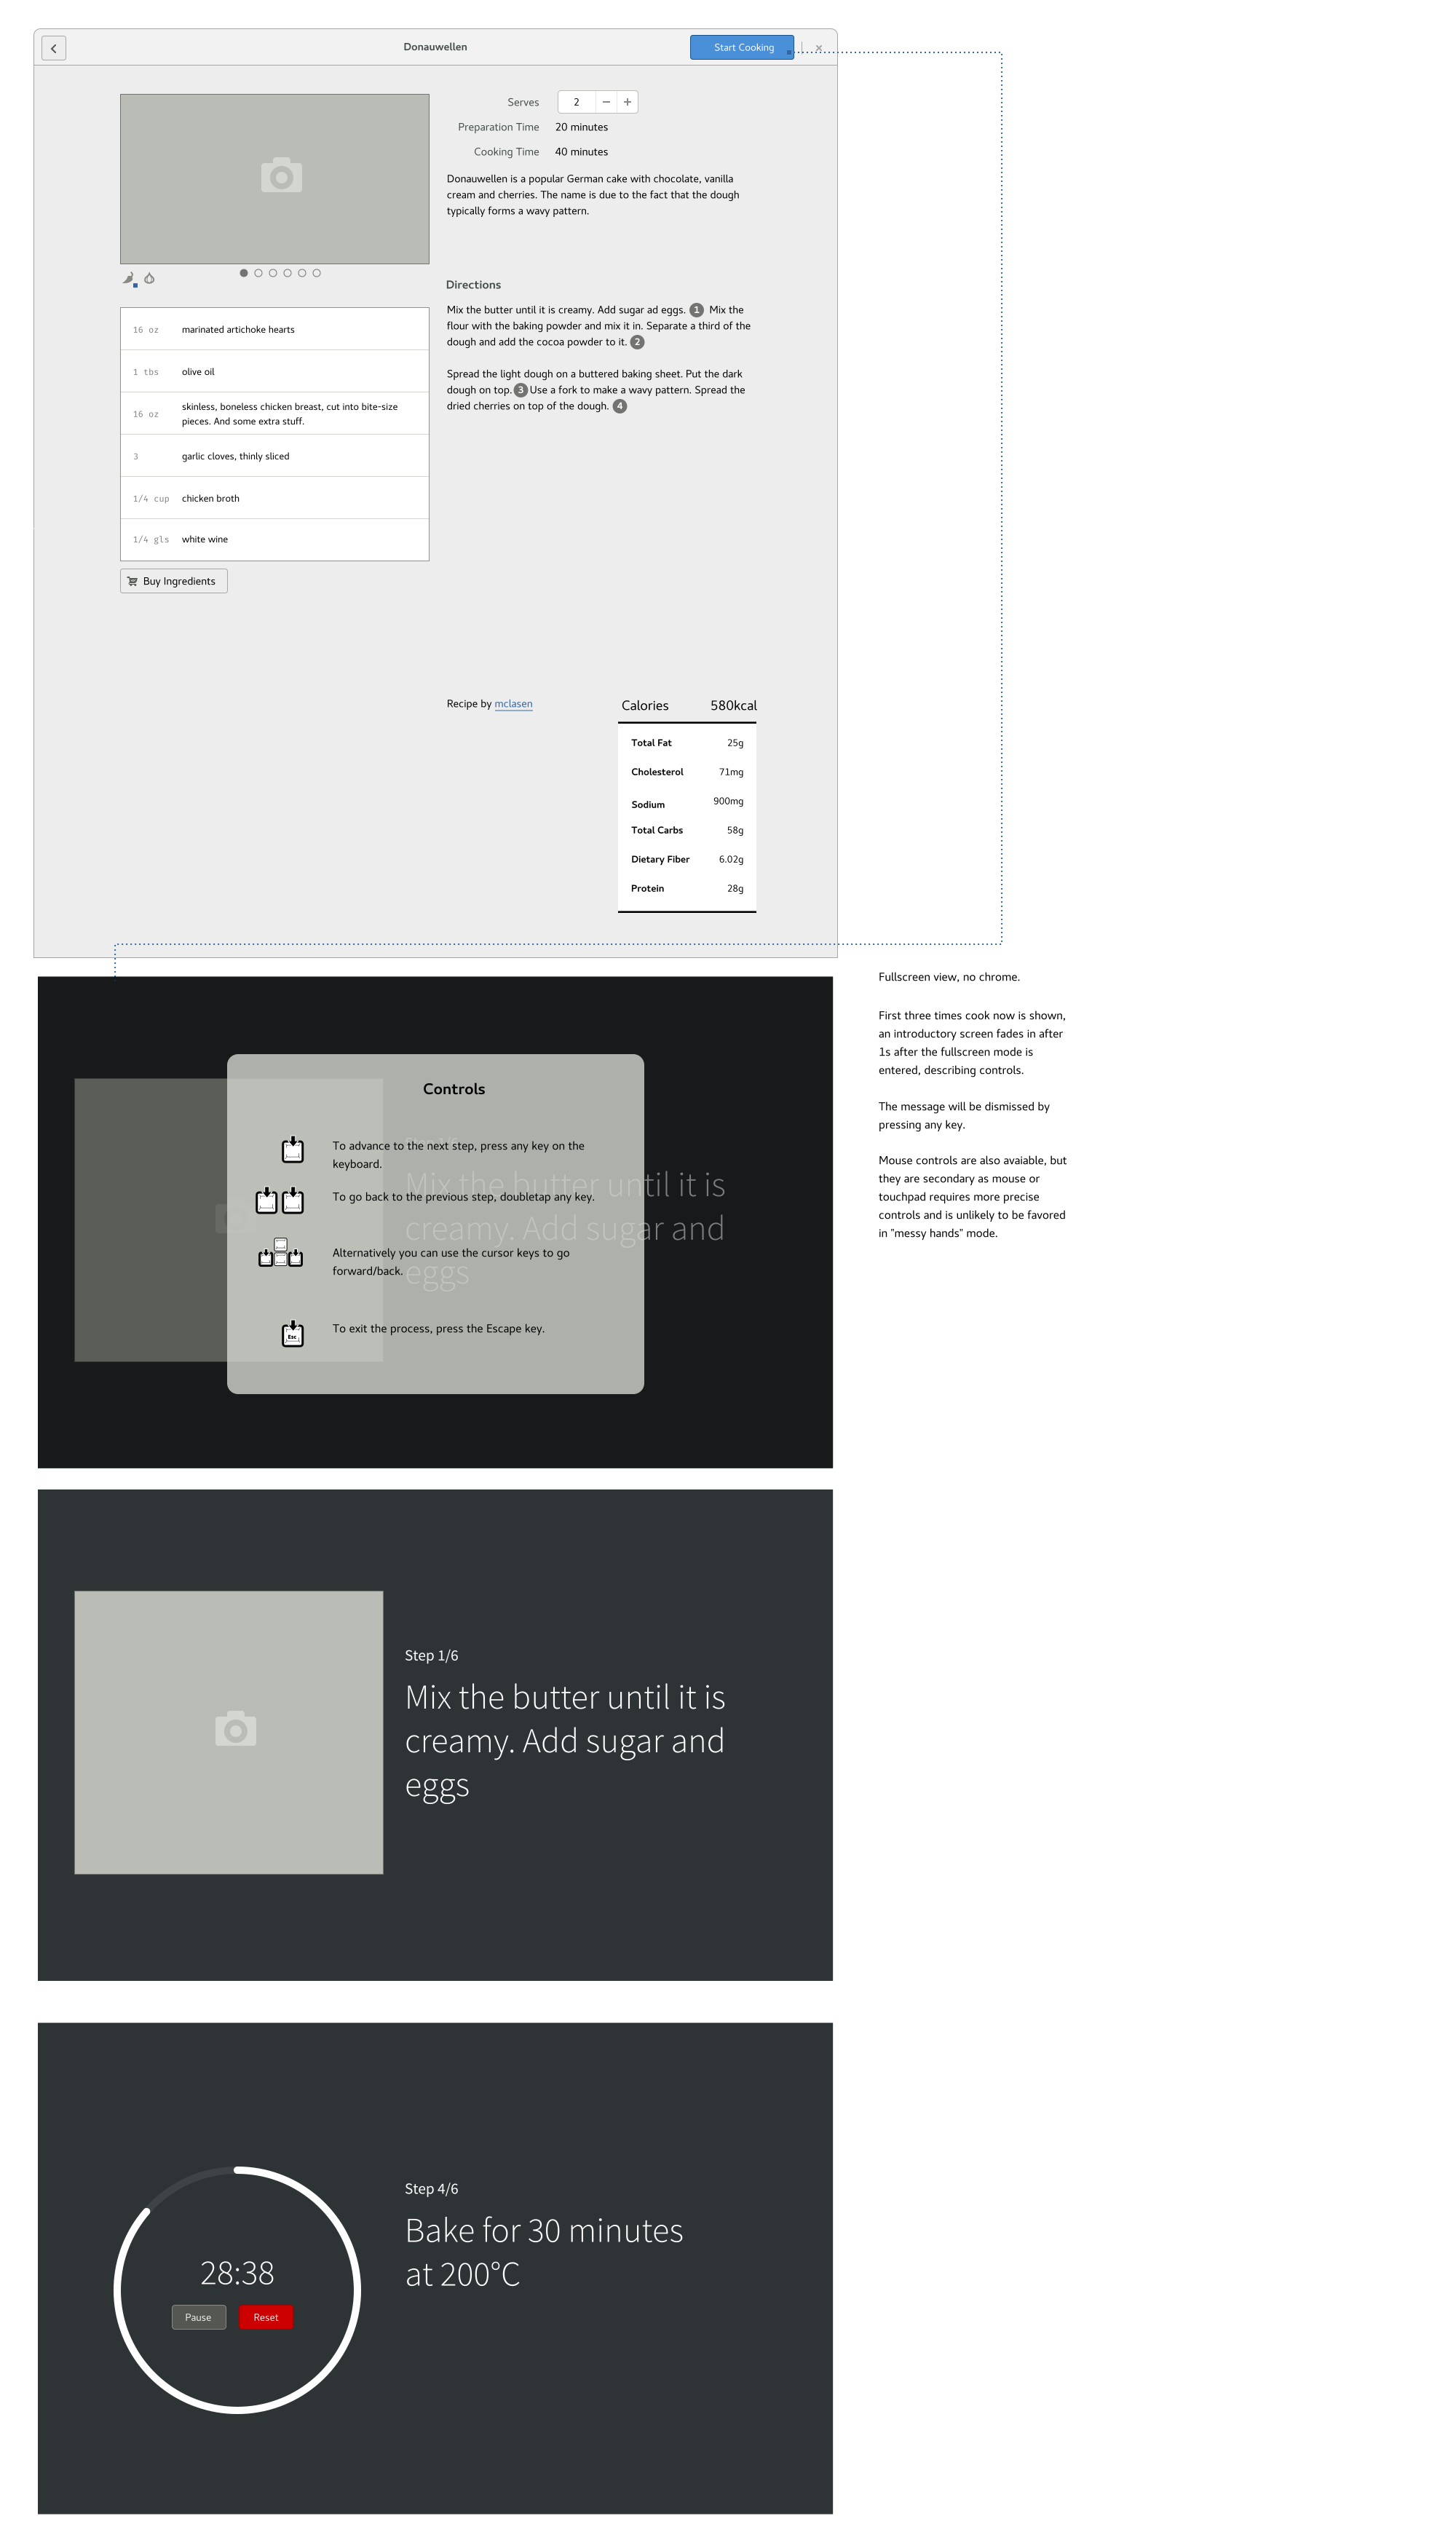 https://raw.githubusercontent.com/gnome-design-team/gnome-mockups/master/recipe/wireframes-cook-now.png